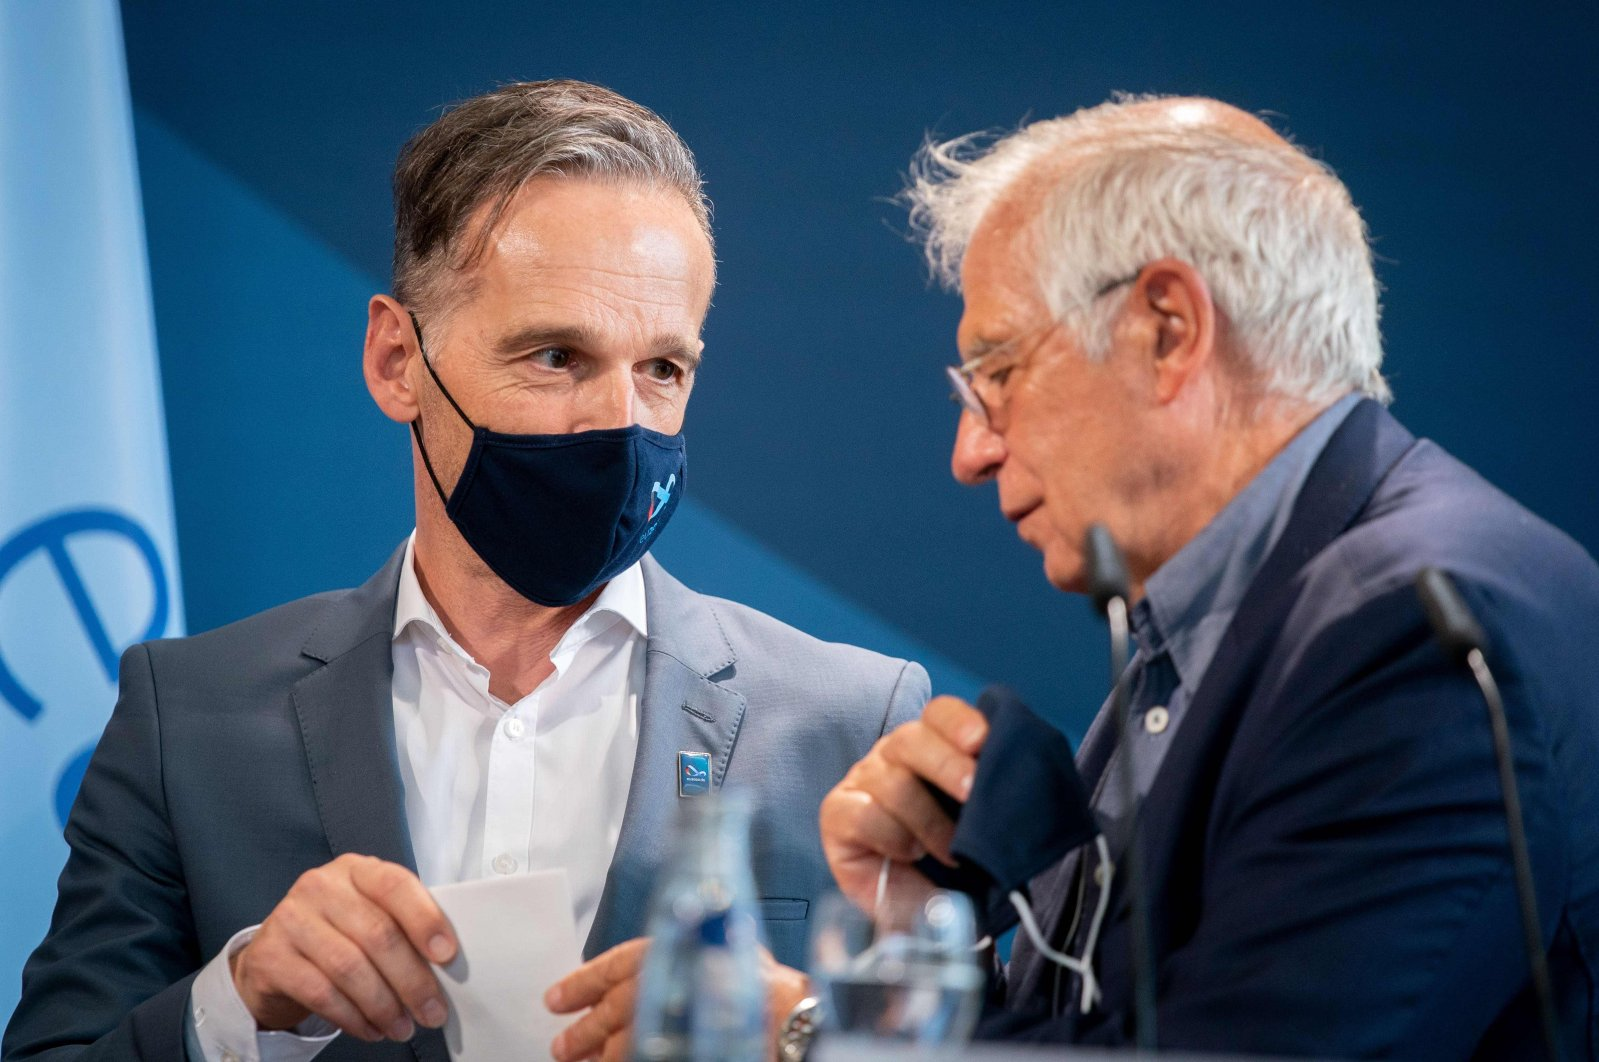 EU High Representative for Foreign Affairs and Security Policy, Josep Borrell and German Foreign Minister Heiko Maas talk before a press statement in Berlin, Aug. 28, 2020. (AFP)